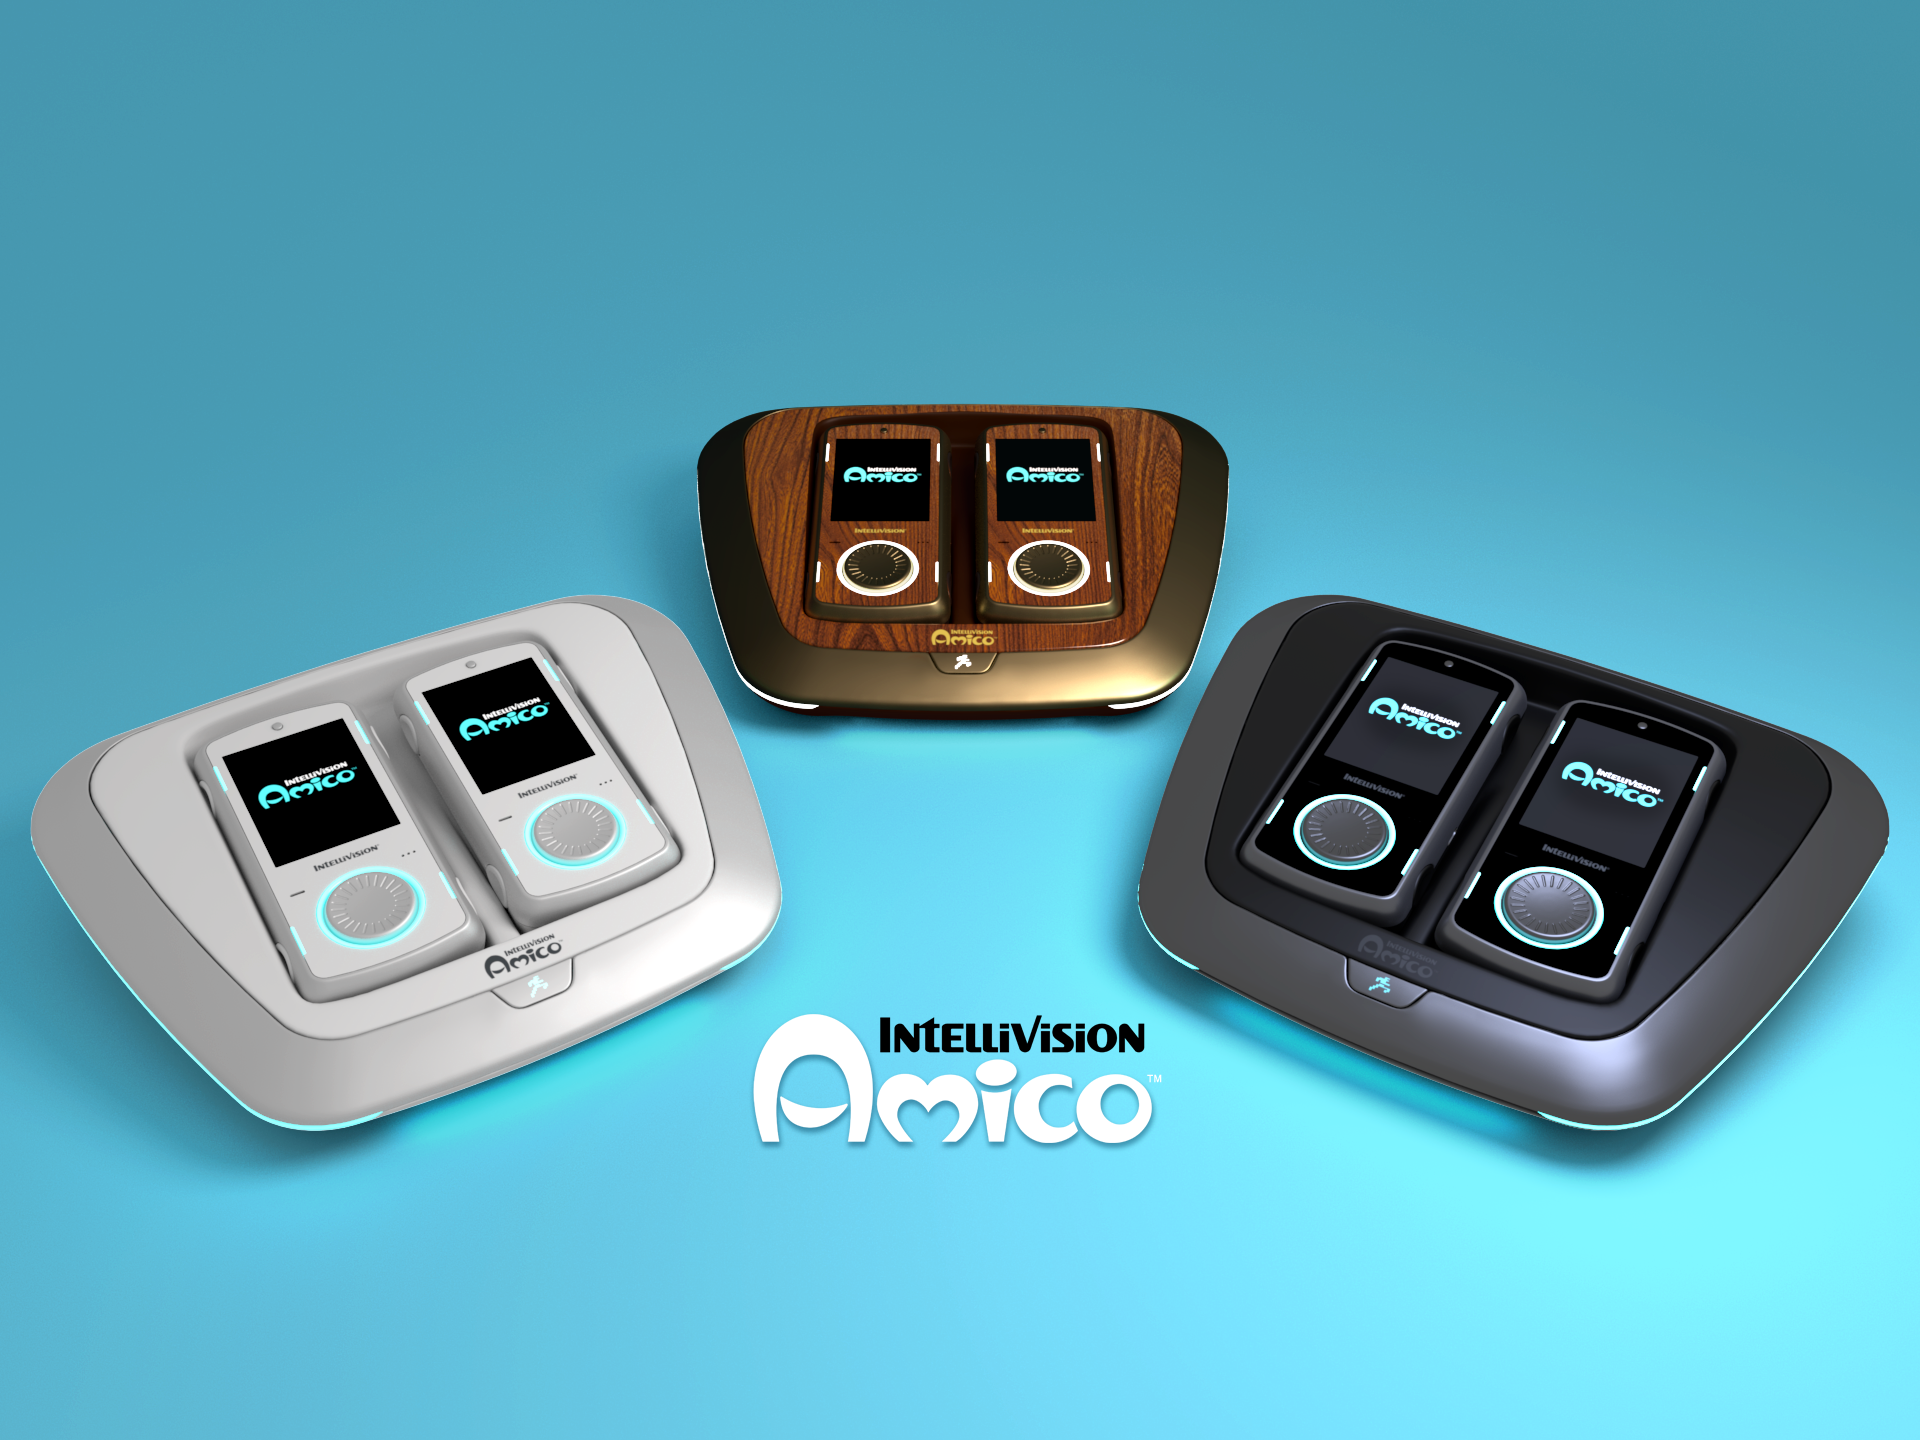 render-amico3colors-wlogo-2020-08-04-02.png